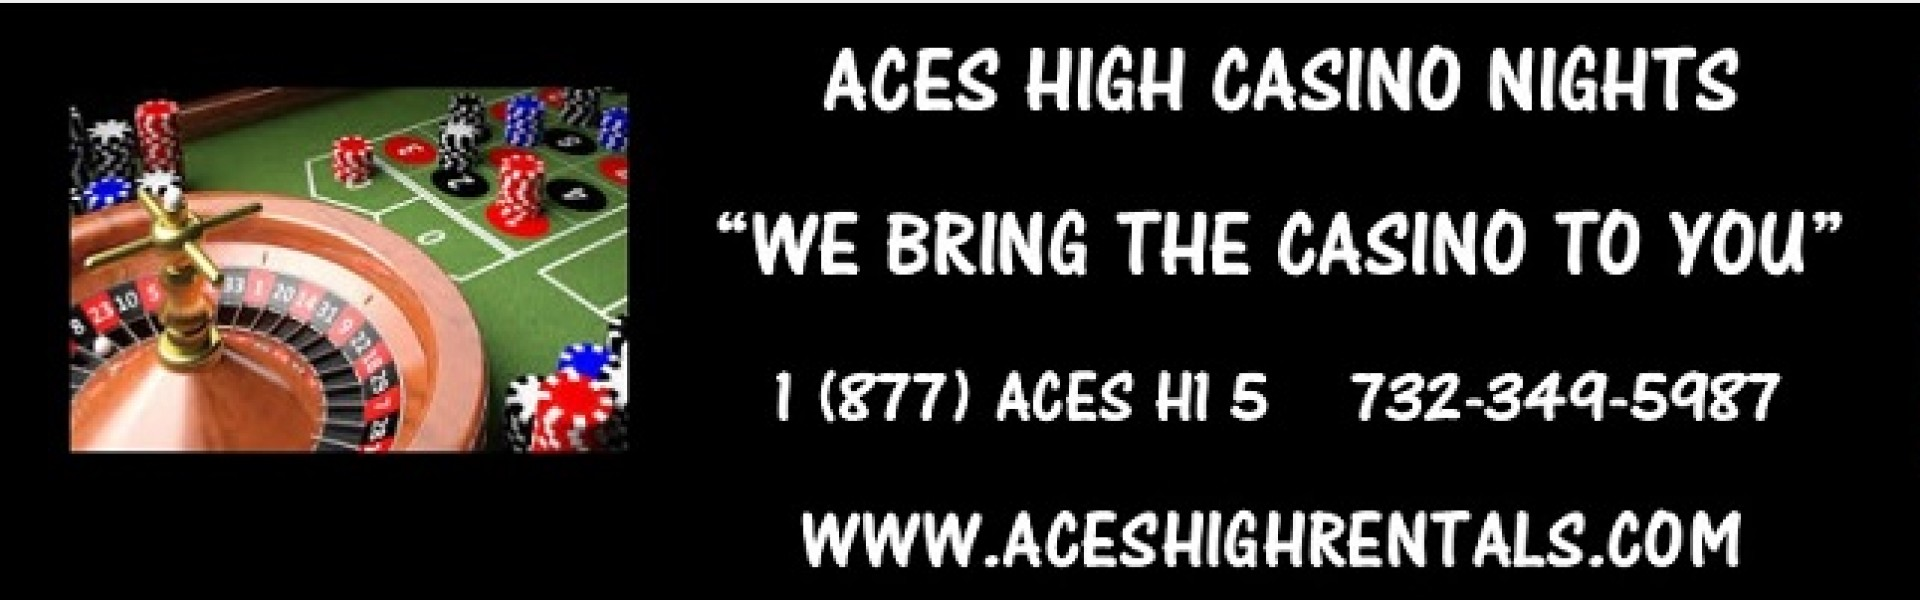 Aces High Casino Rentals Logo